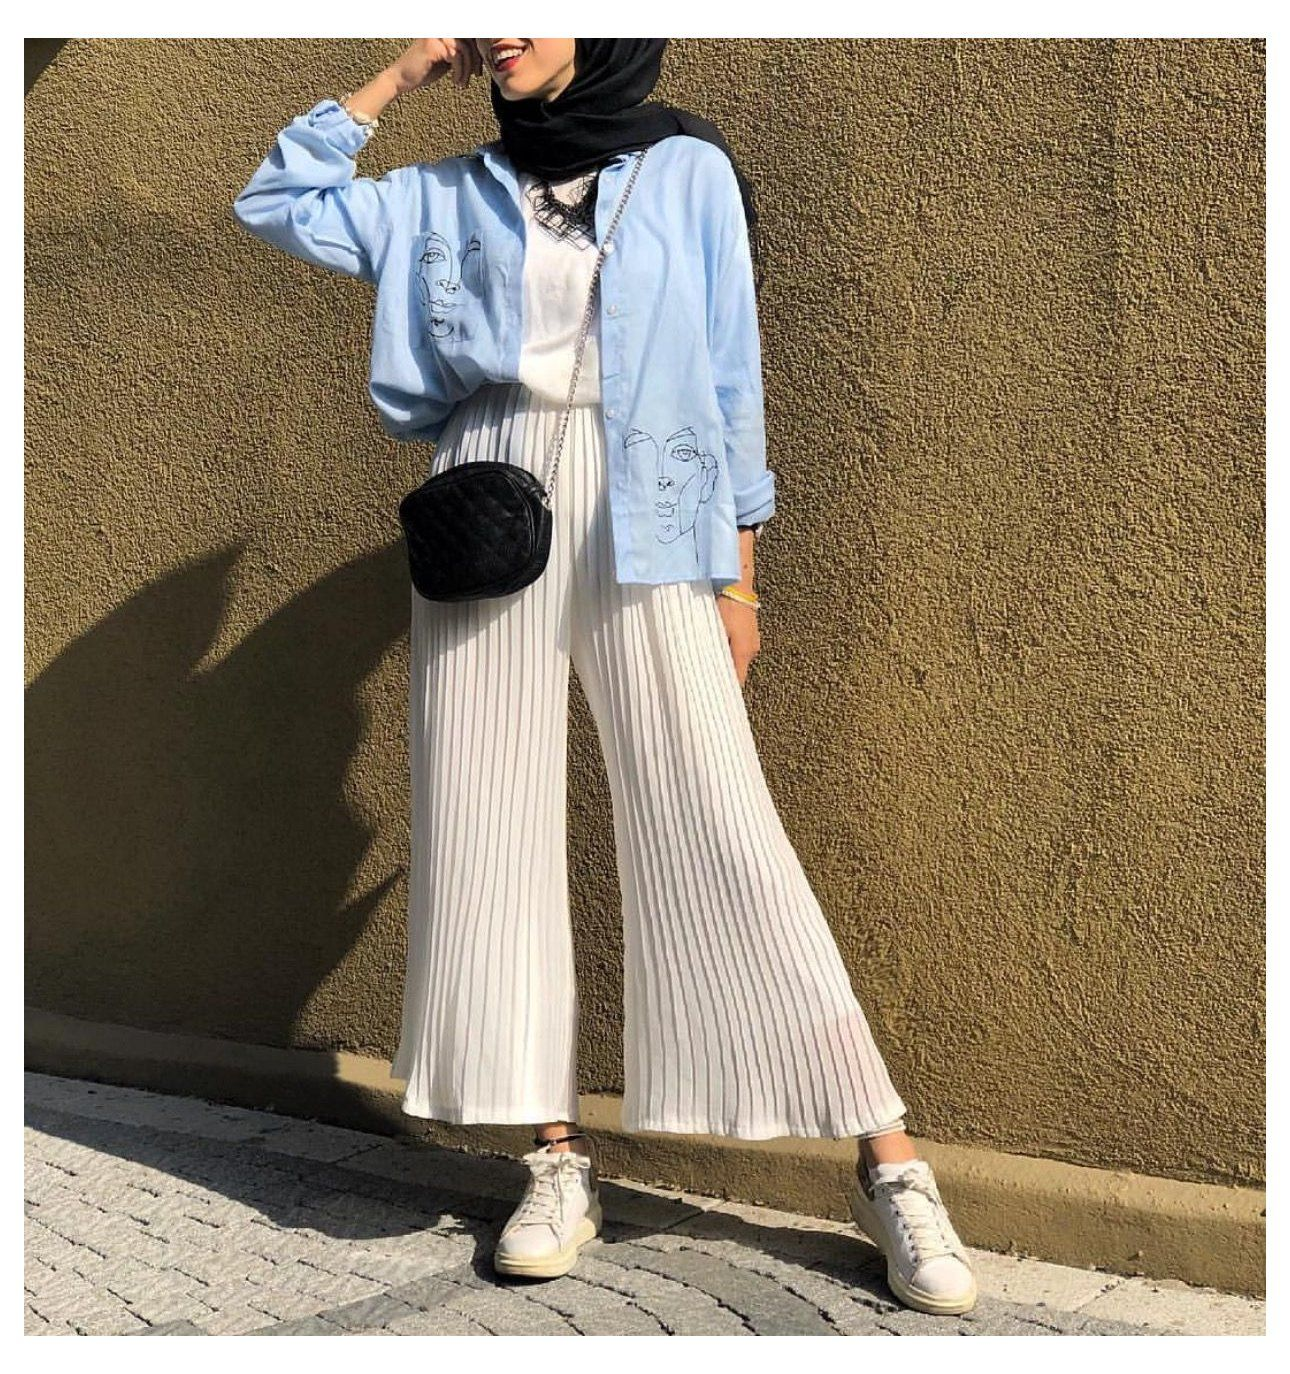 Hijab Outfit Ideas Pinterest Just4girls Fashion Hijab Casual Modern Hijab Fashion Hijabi Outfits Casual